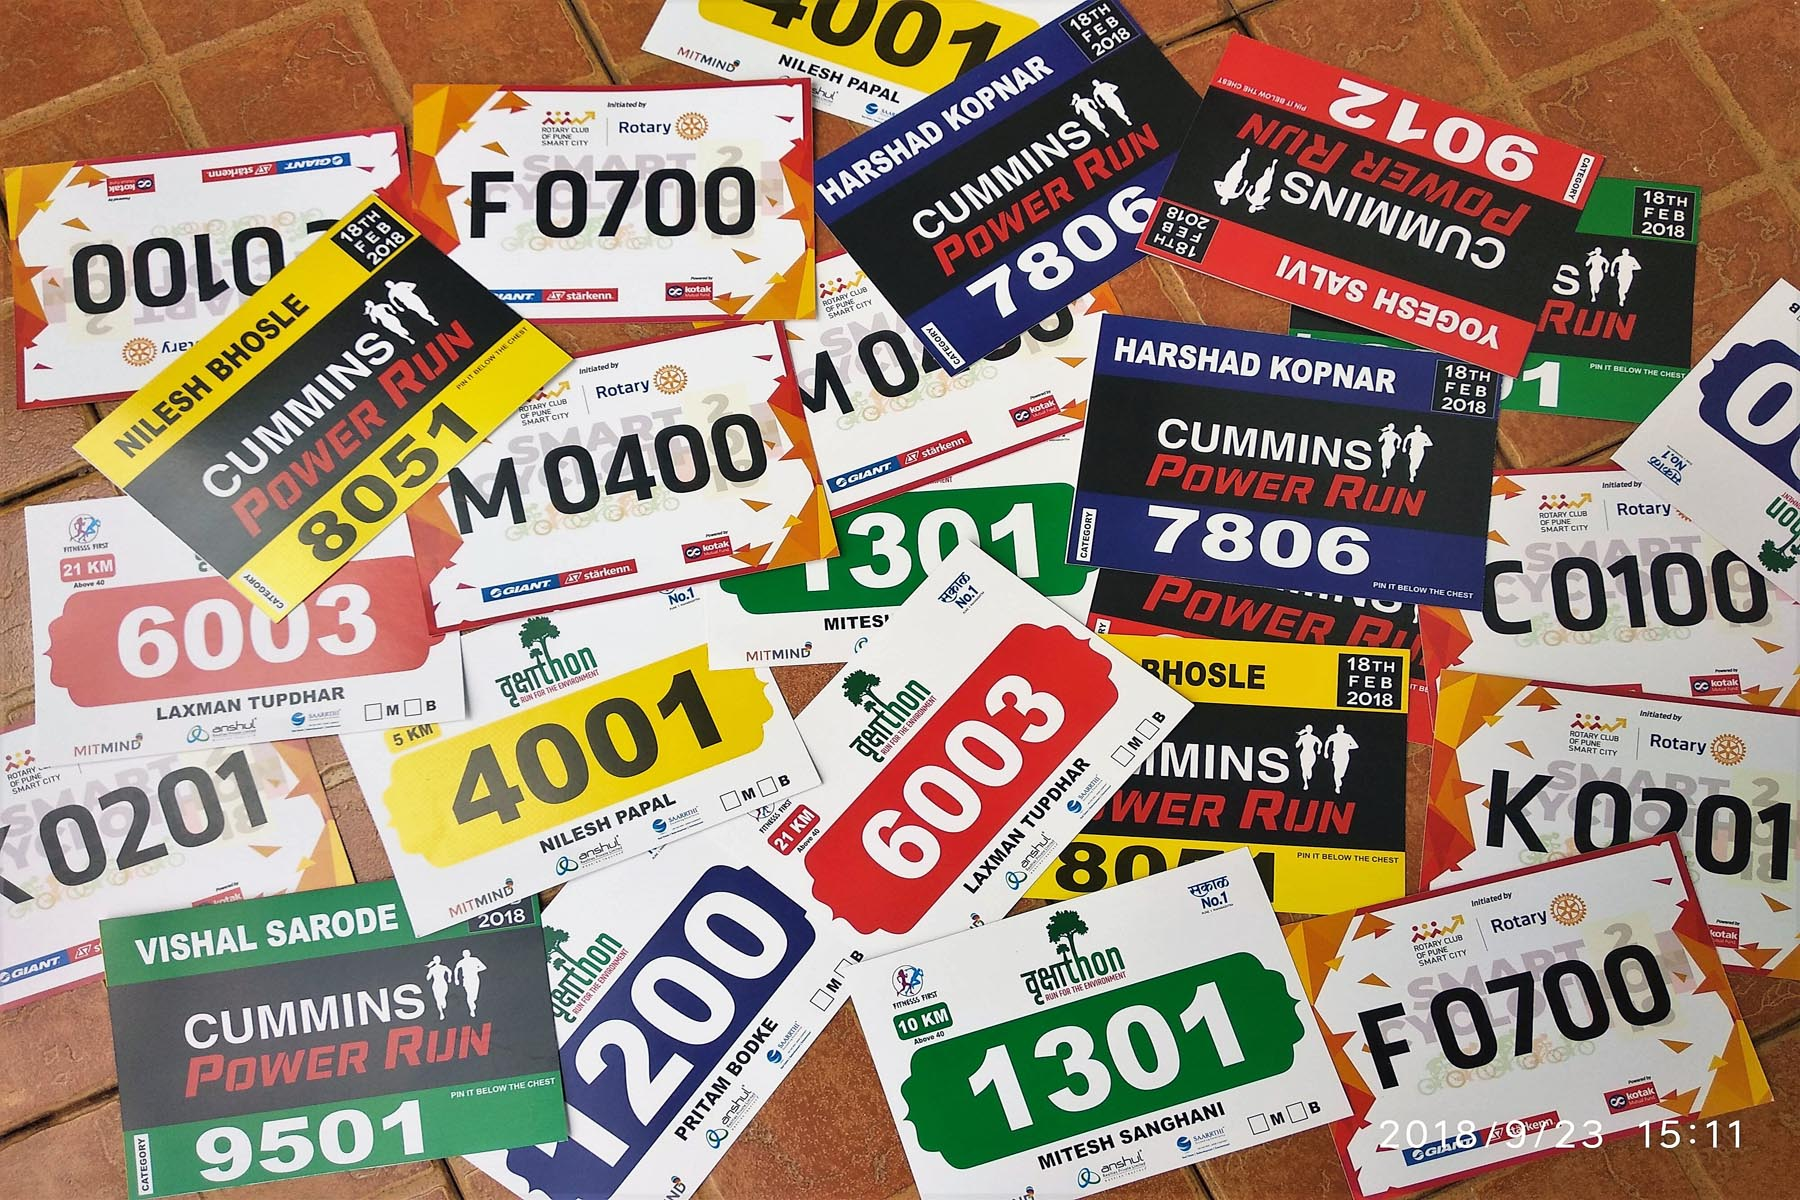 digitally printed marathon bibs ideal for athletics and other sports meets